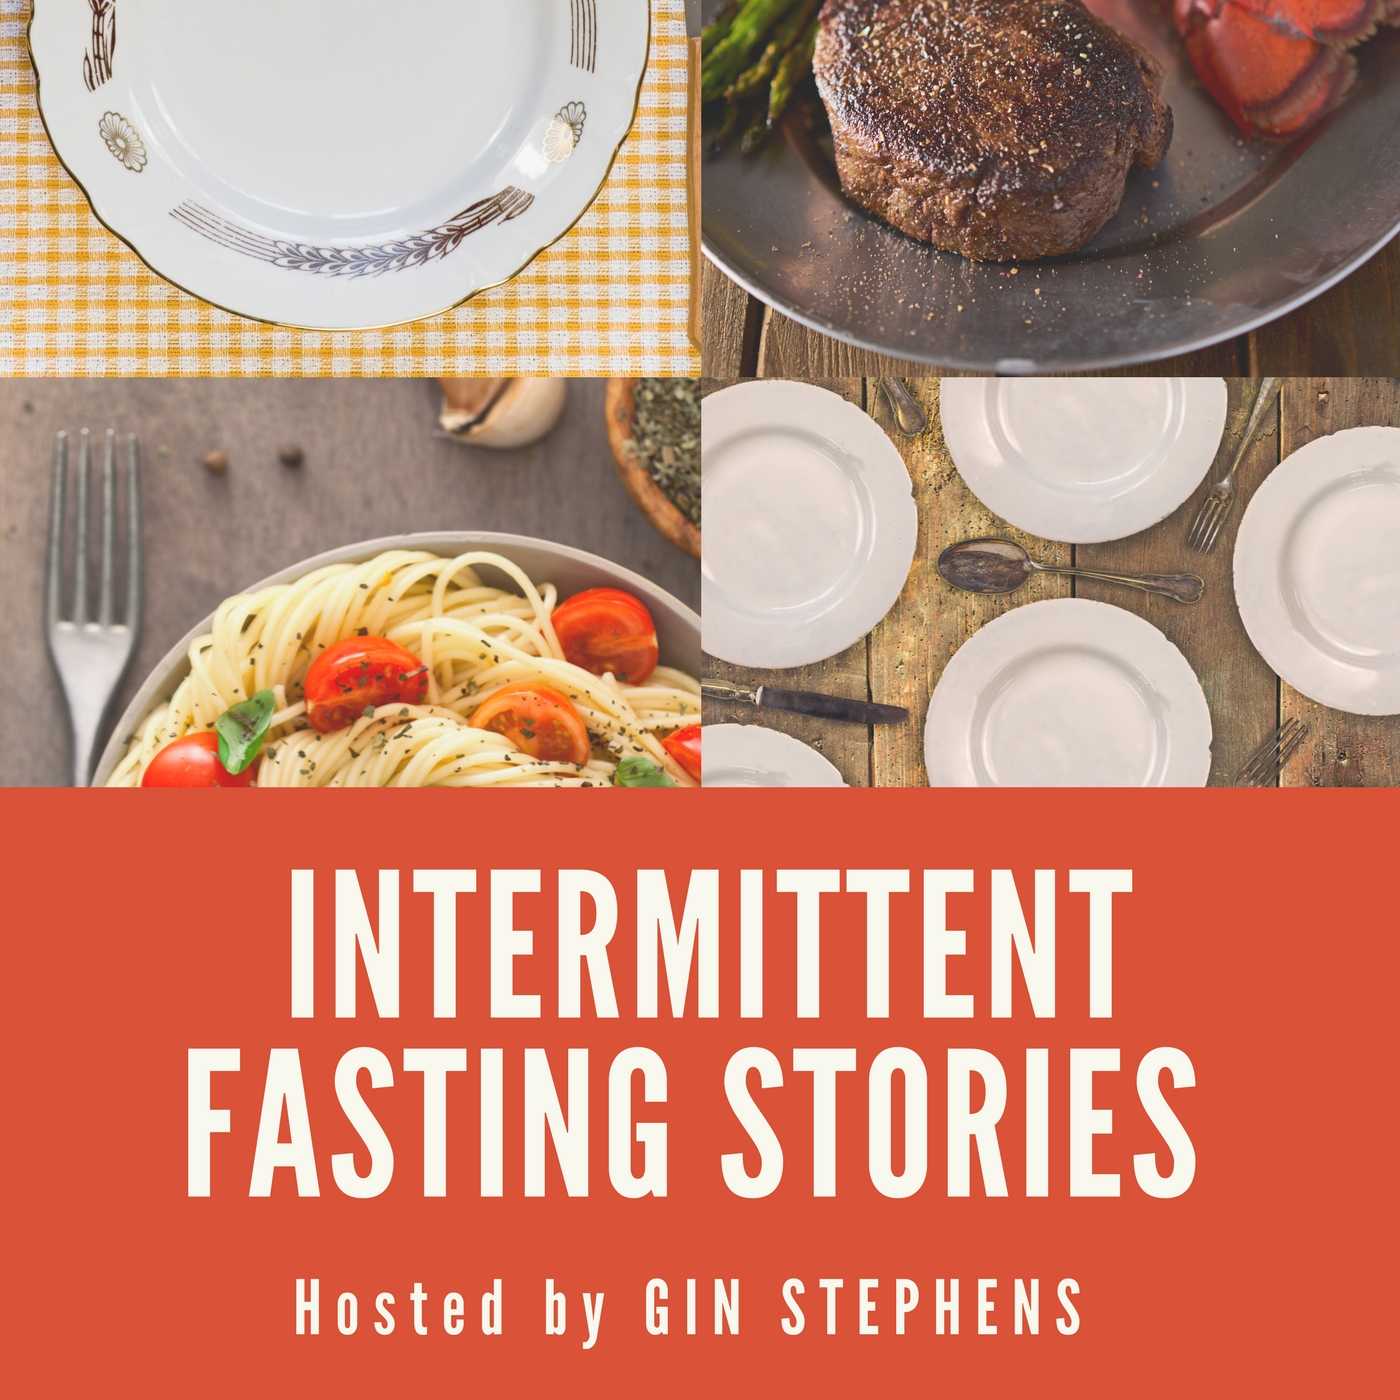 Best The Intermittent Fasting Podcast Episodes | Most